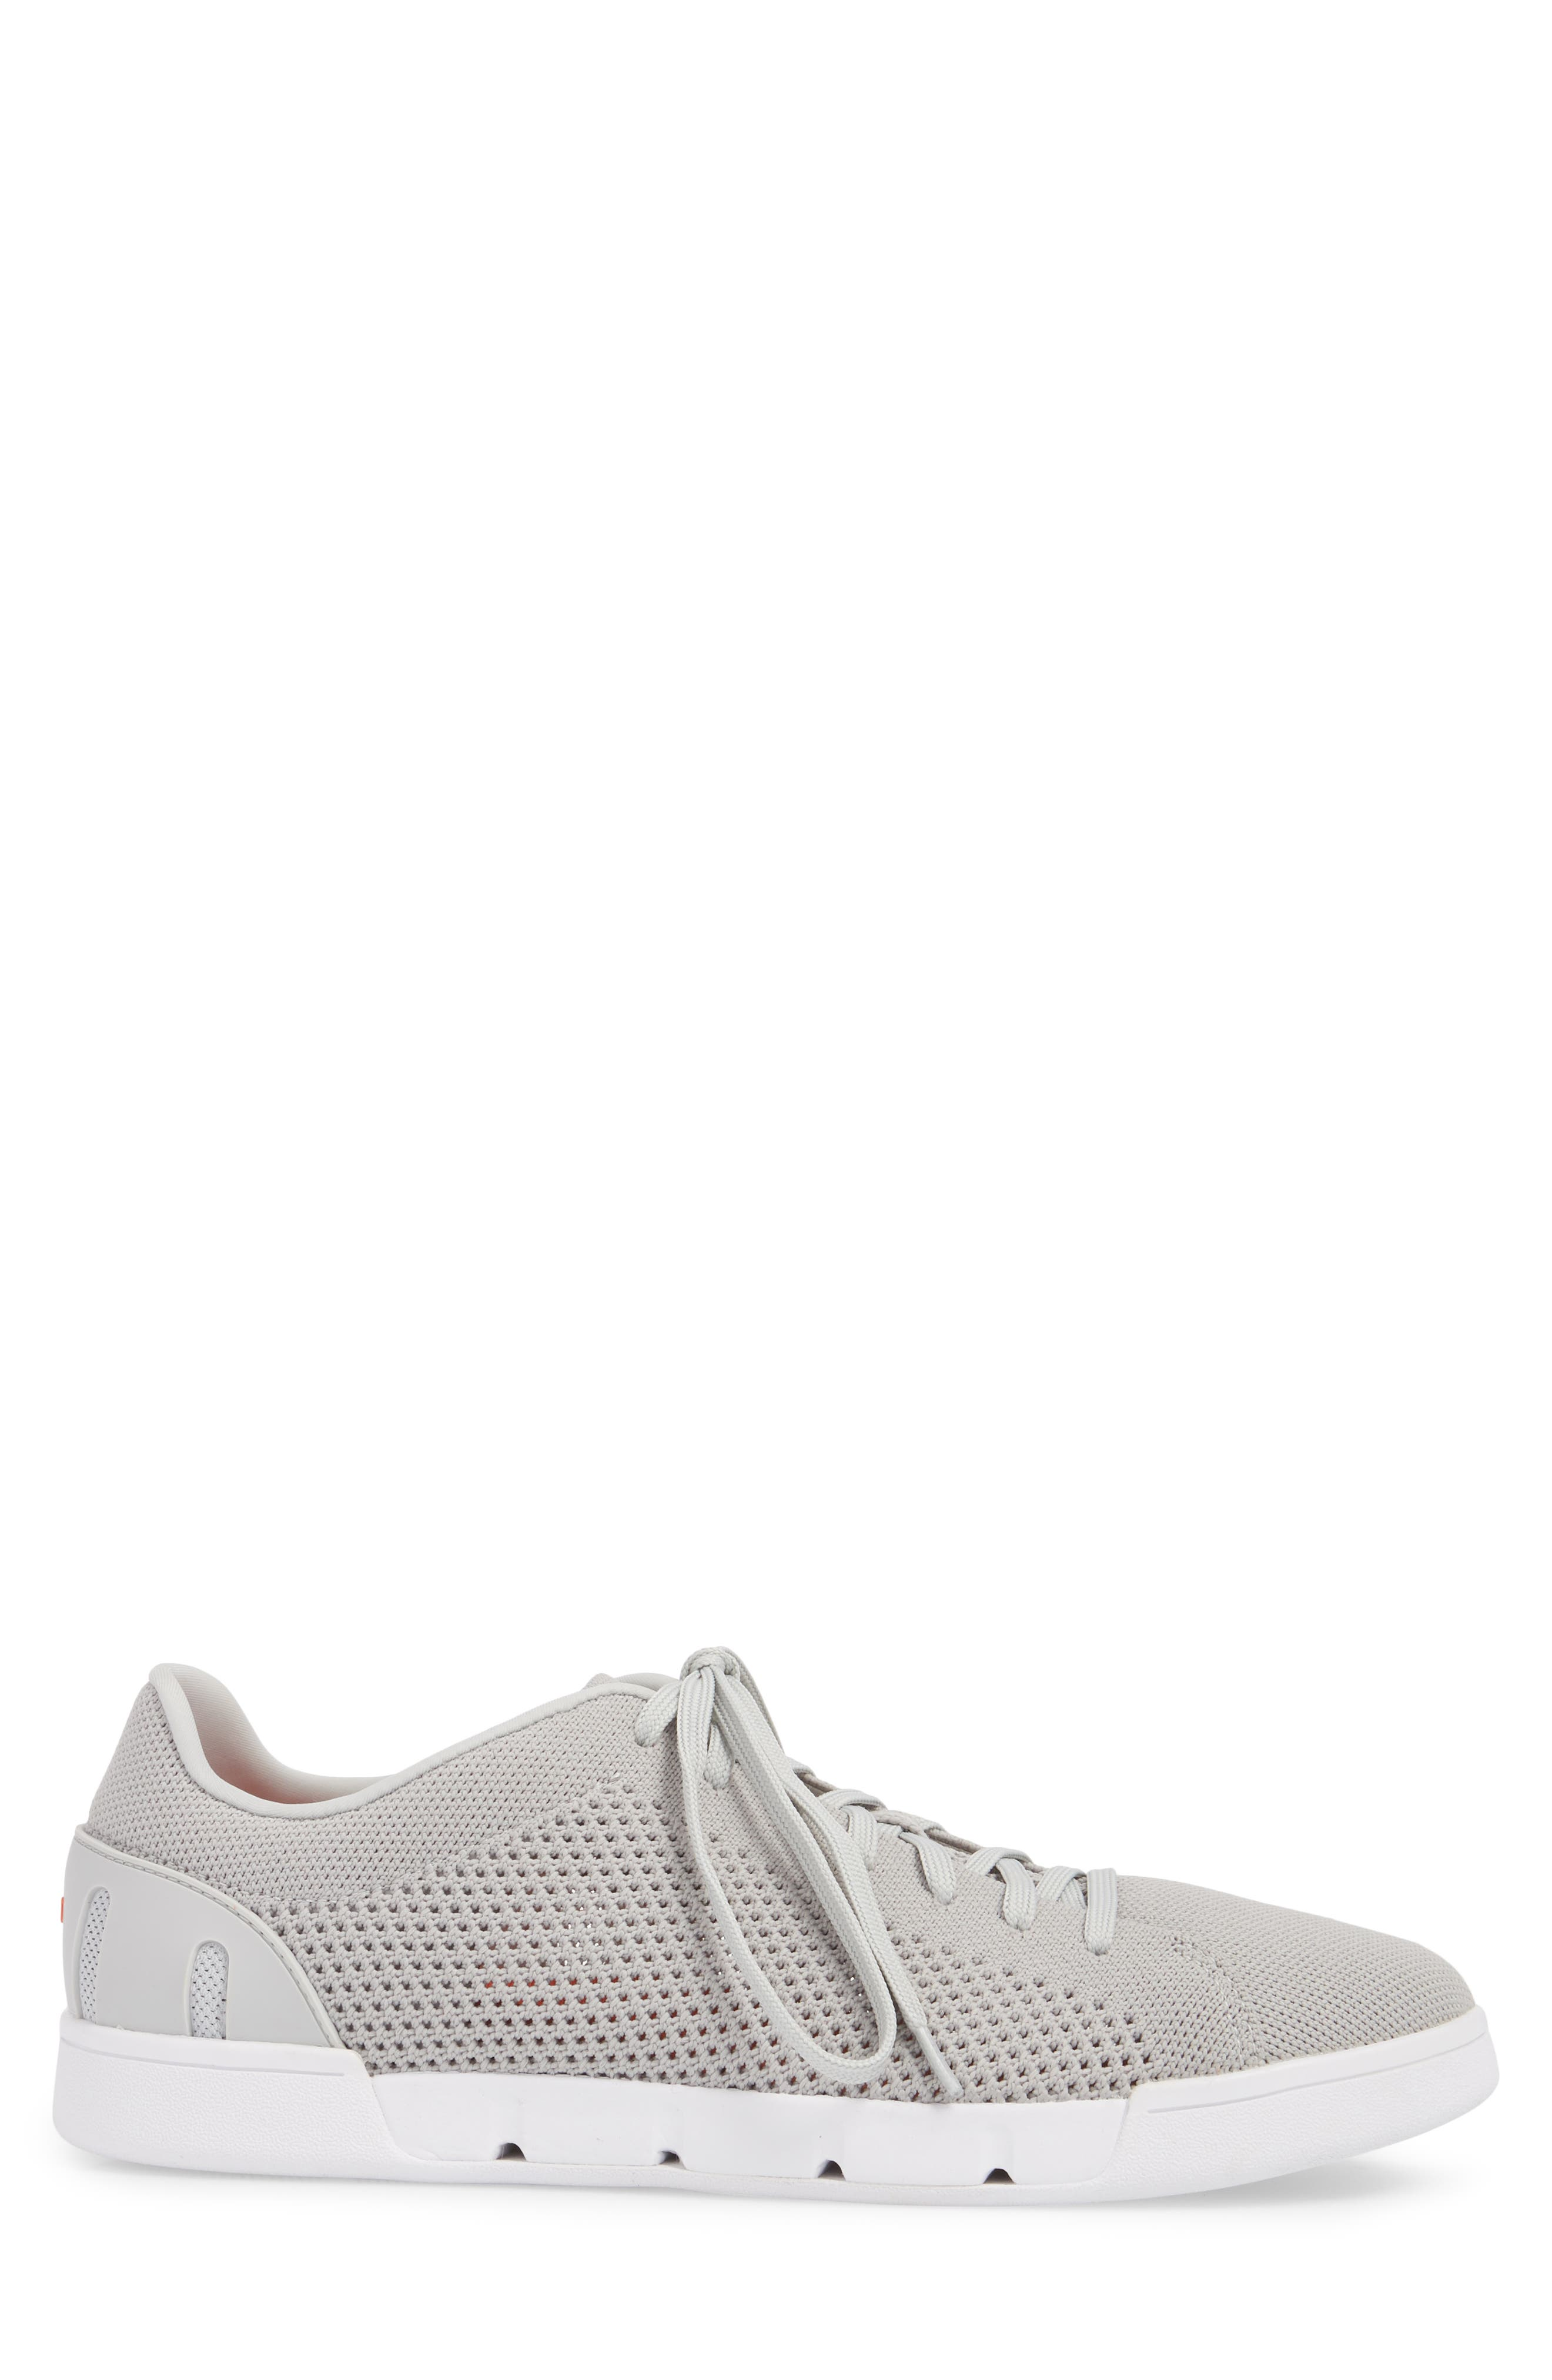 Breeze Tennis Washable Knit Sneaker,                             Alternate thumbnail 3, color,                             Light Grey/ White Fabric